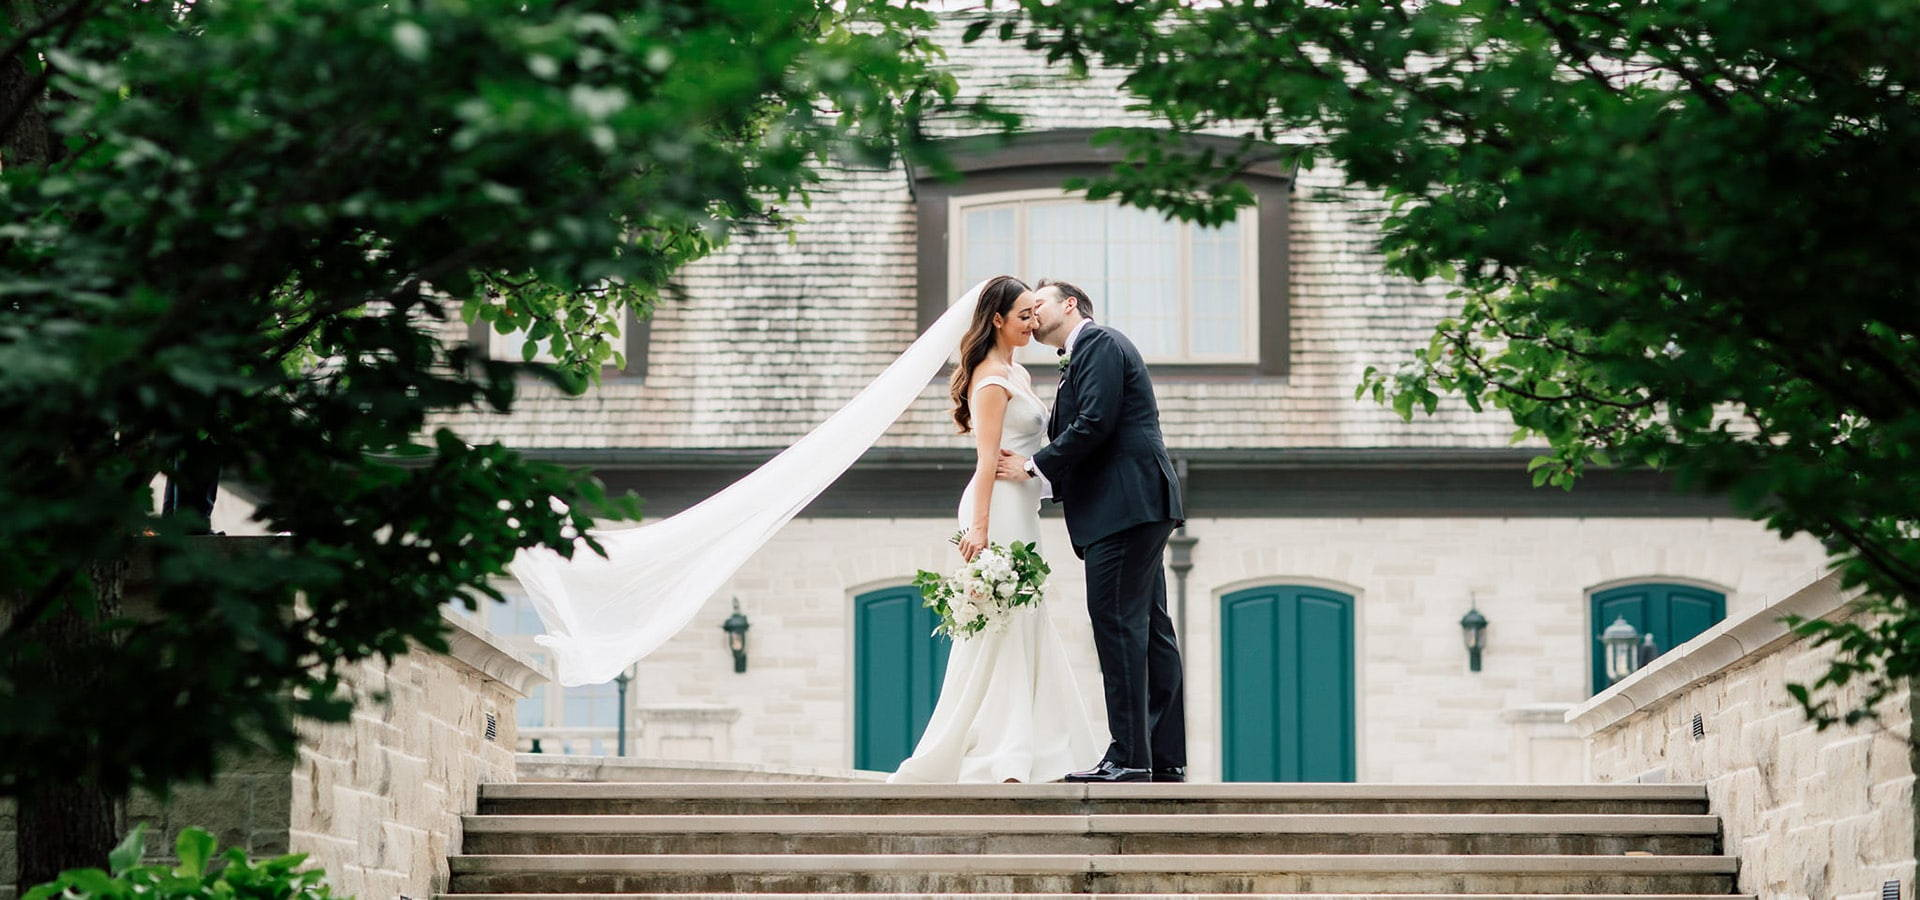 Hero image for Sarah and Damian's European Style Wedding at Magna Golf Club